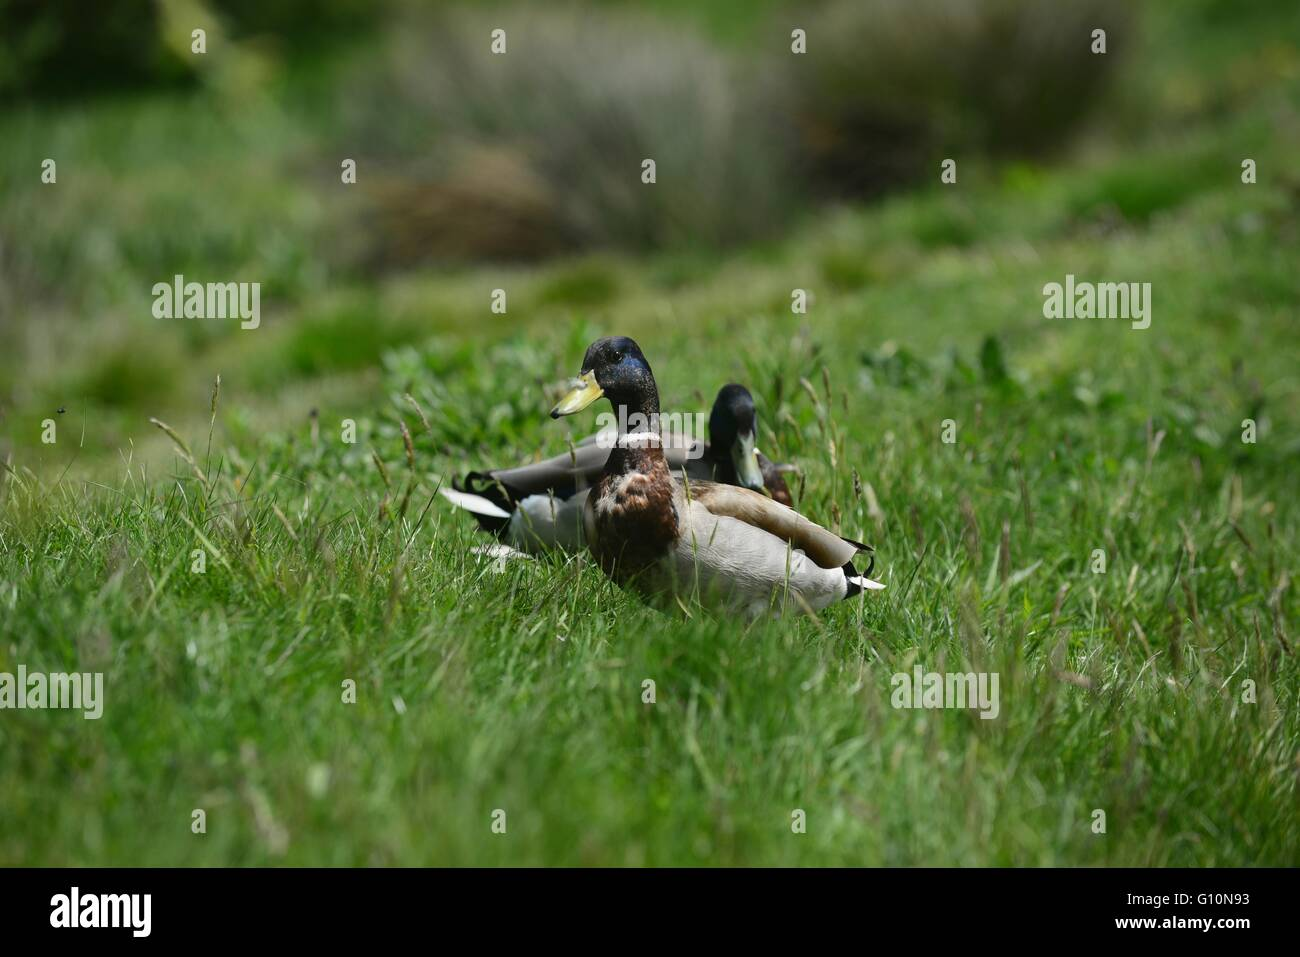 Ducks in the Wetlands area of The Queen Elizabeth Olympic Park, Stratford, London, England, UK - Stock Image